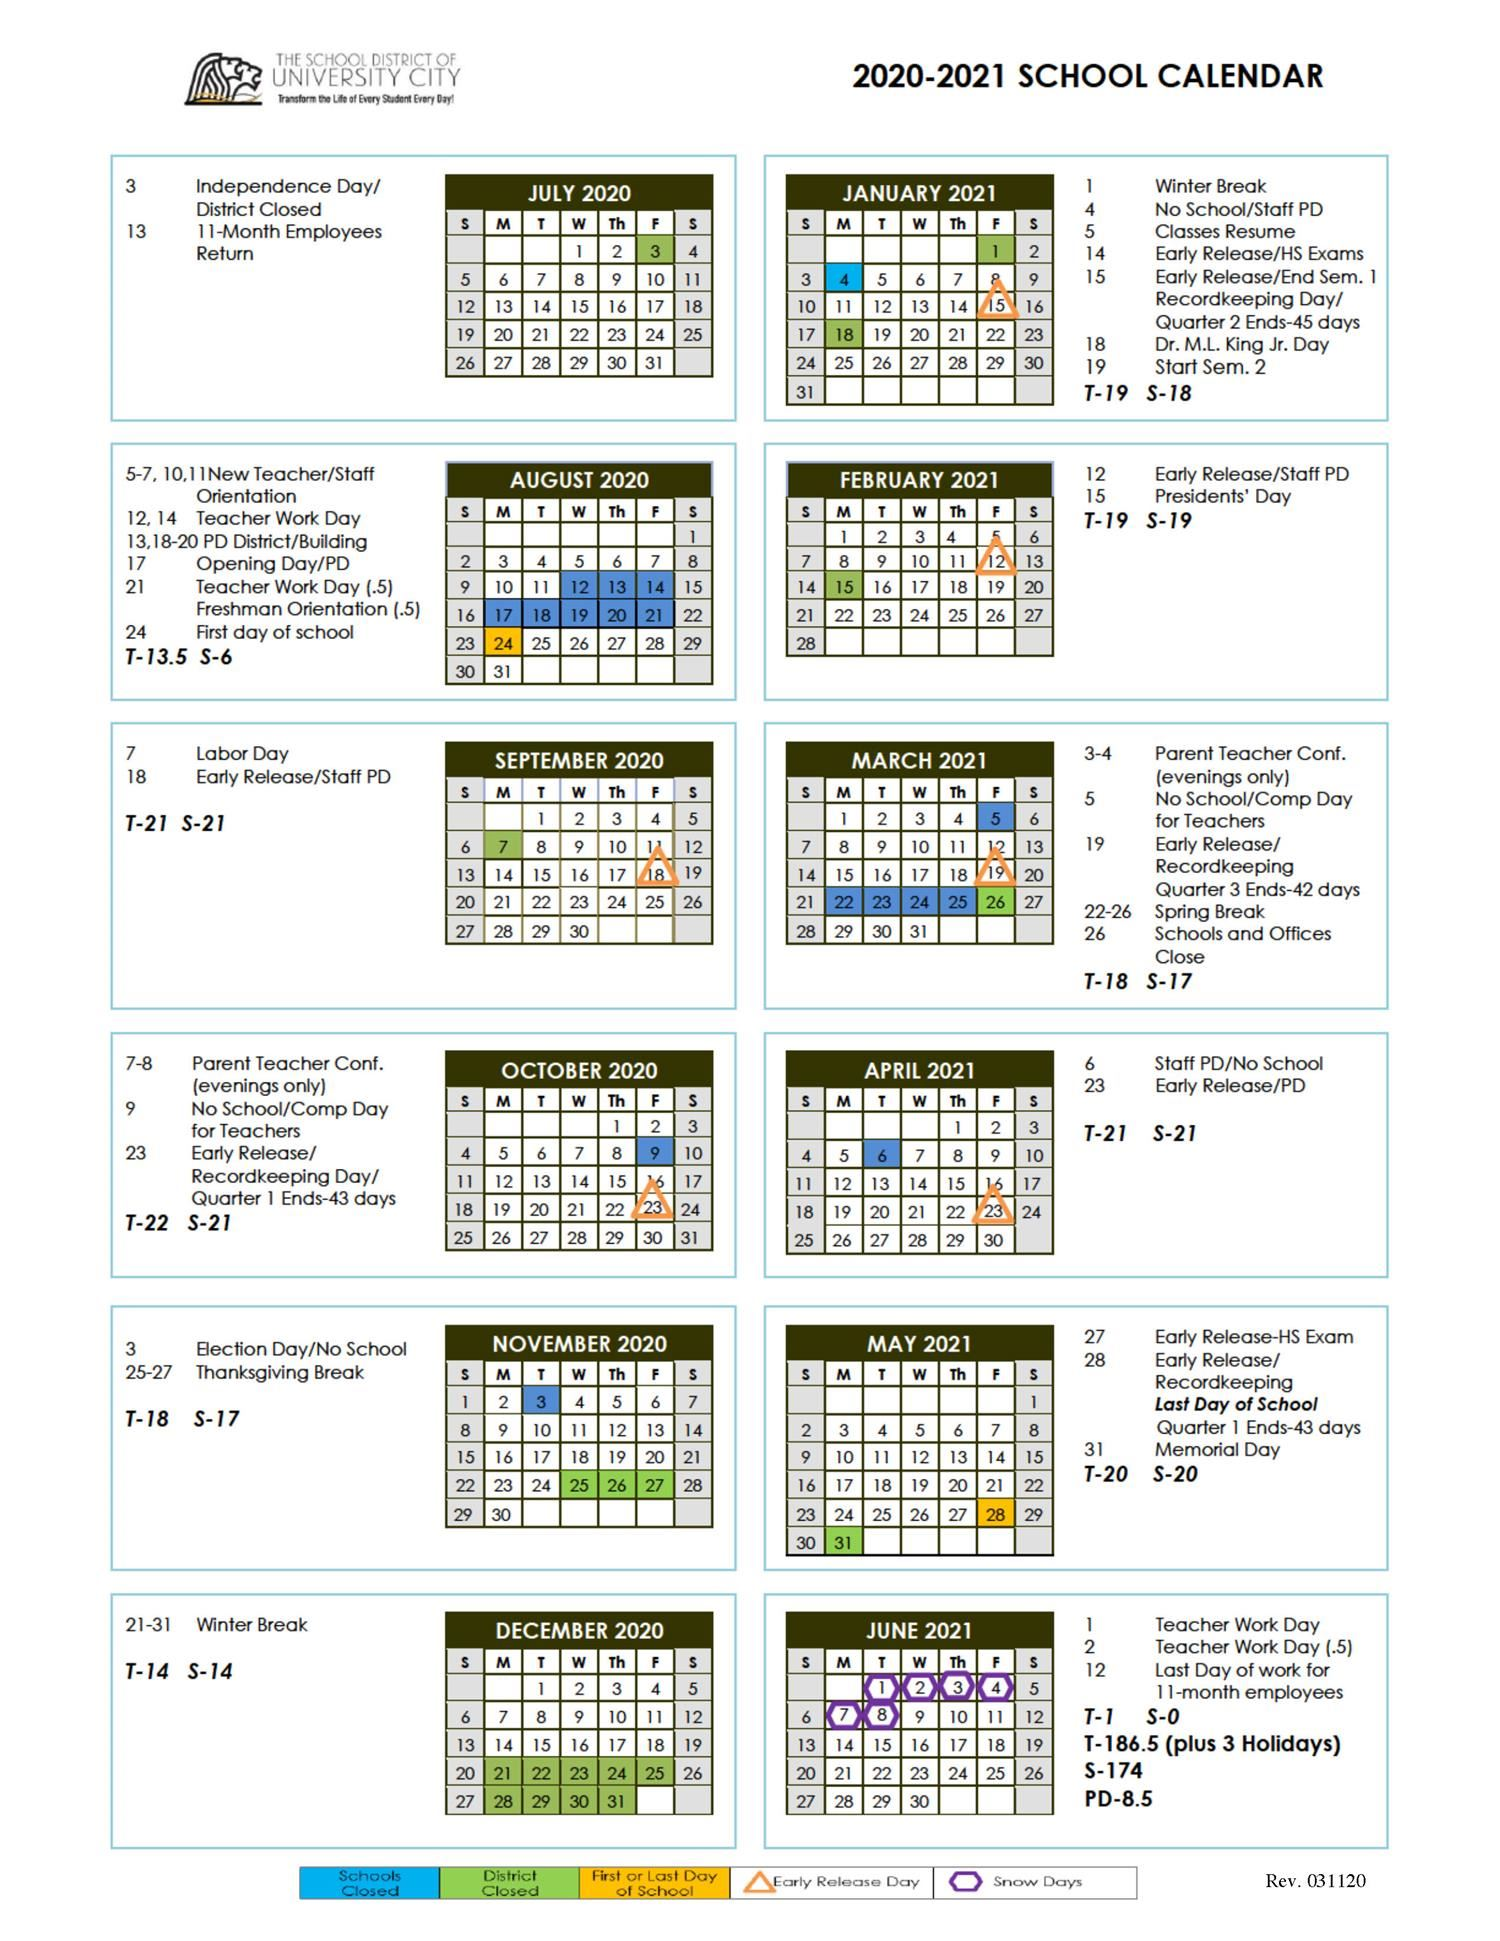 University Of Hawaii Academic Calendar 2021 - February 2021